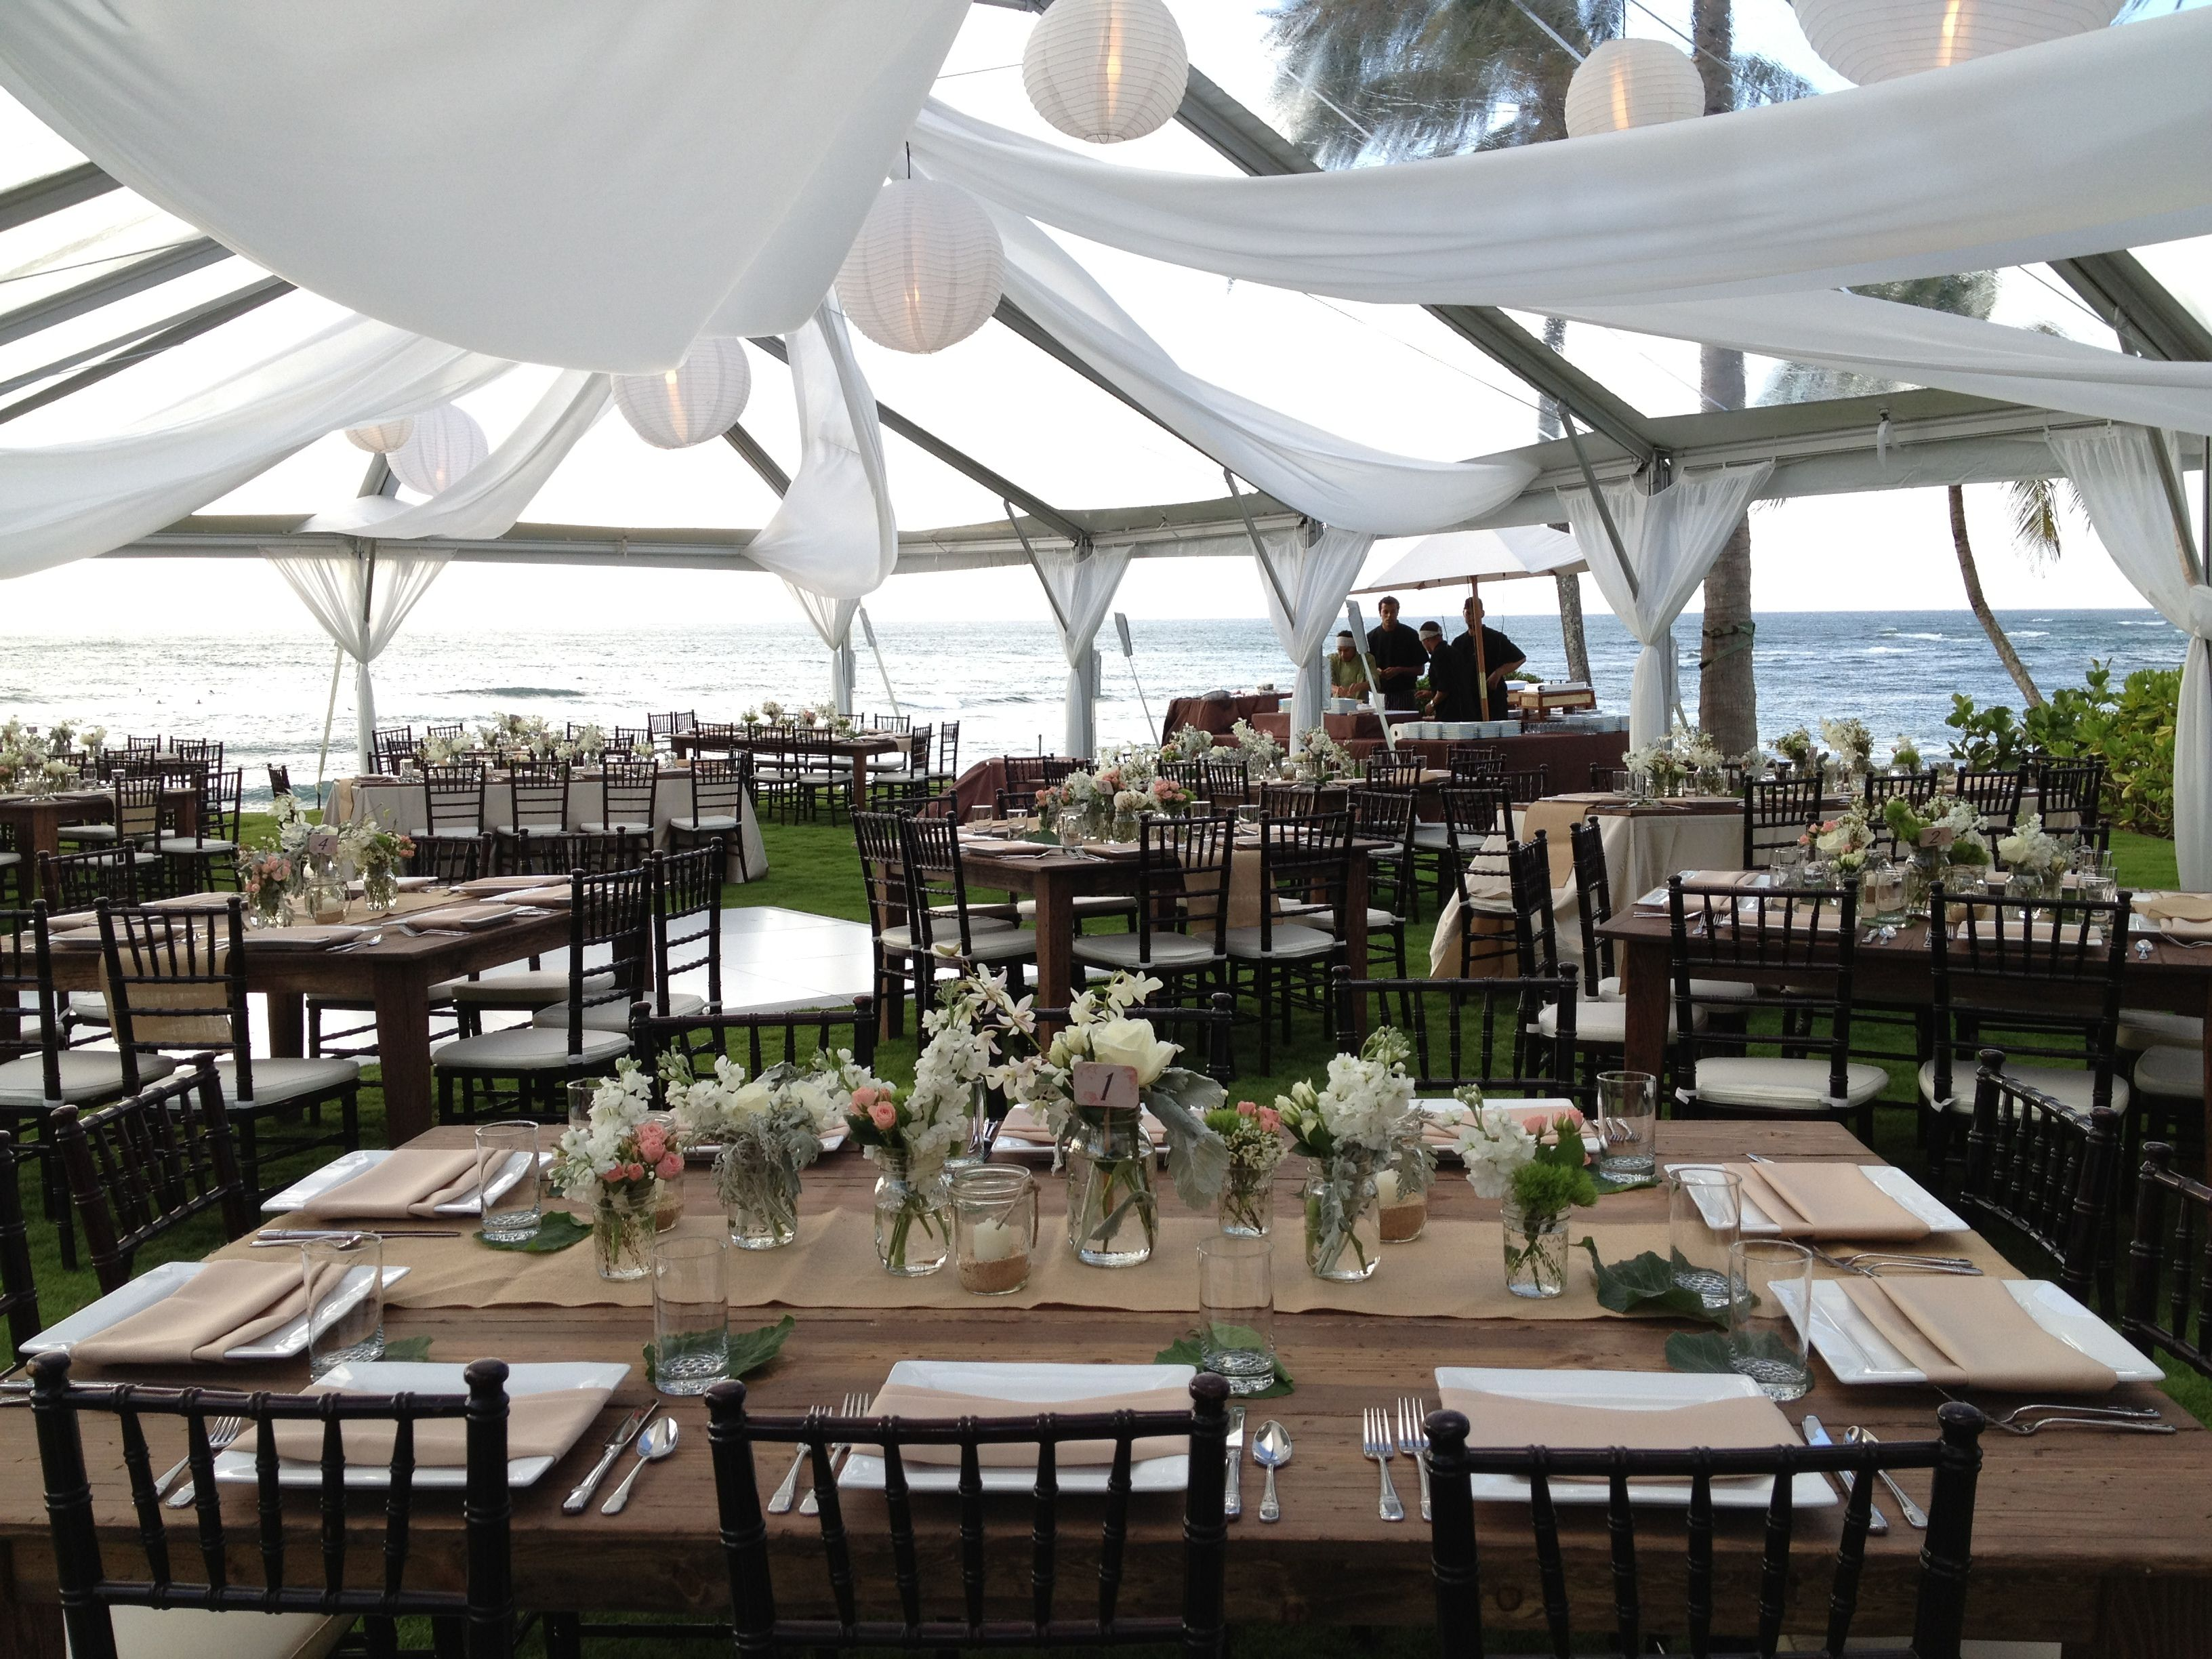 Chiavari chairs rental chicago chairs for - Clear Top Tent With Fabric Swag Liner Lanterns And Rectangle Wood Farm Tableswith Mahoghany Chivari Chairs